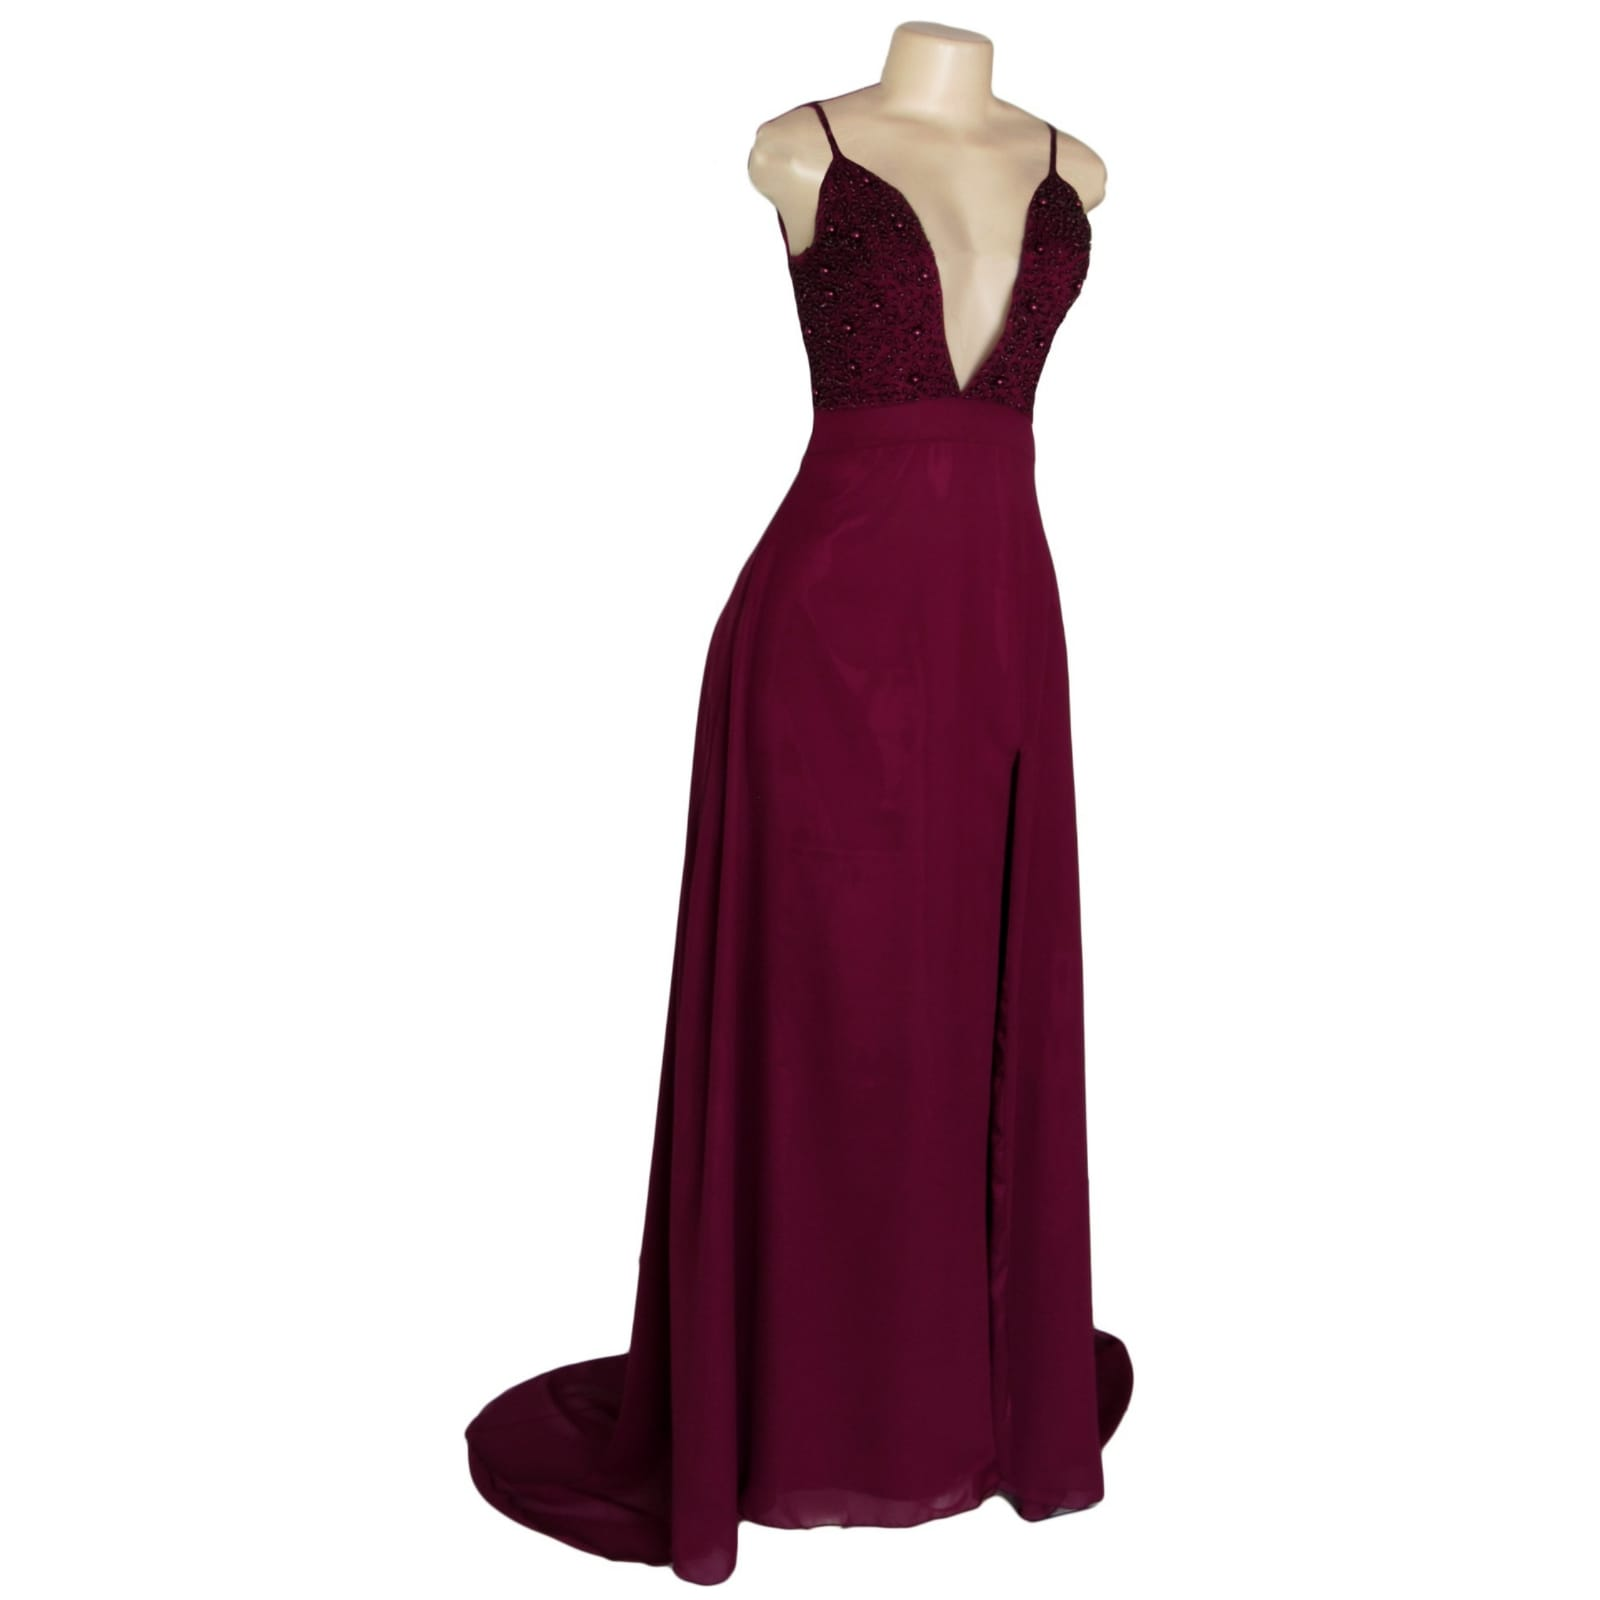 Burgundy plunging neckline long prom dress 8 burgundy plunging neckline long matric dance dress with a slit and a train. With a beaded bodice.